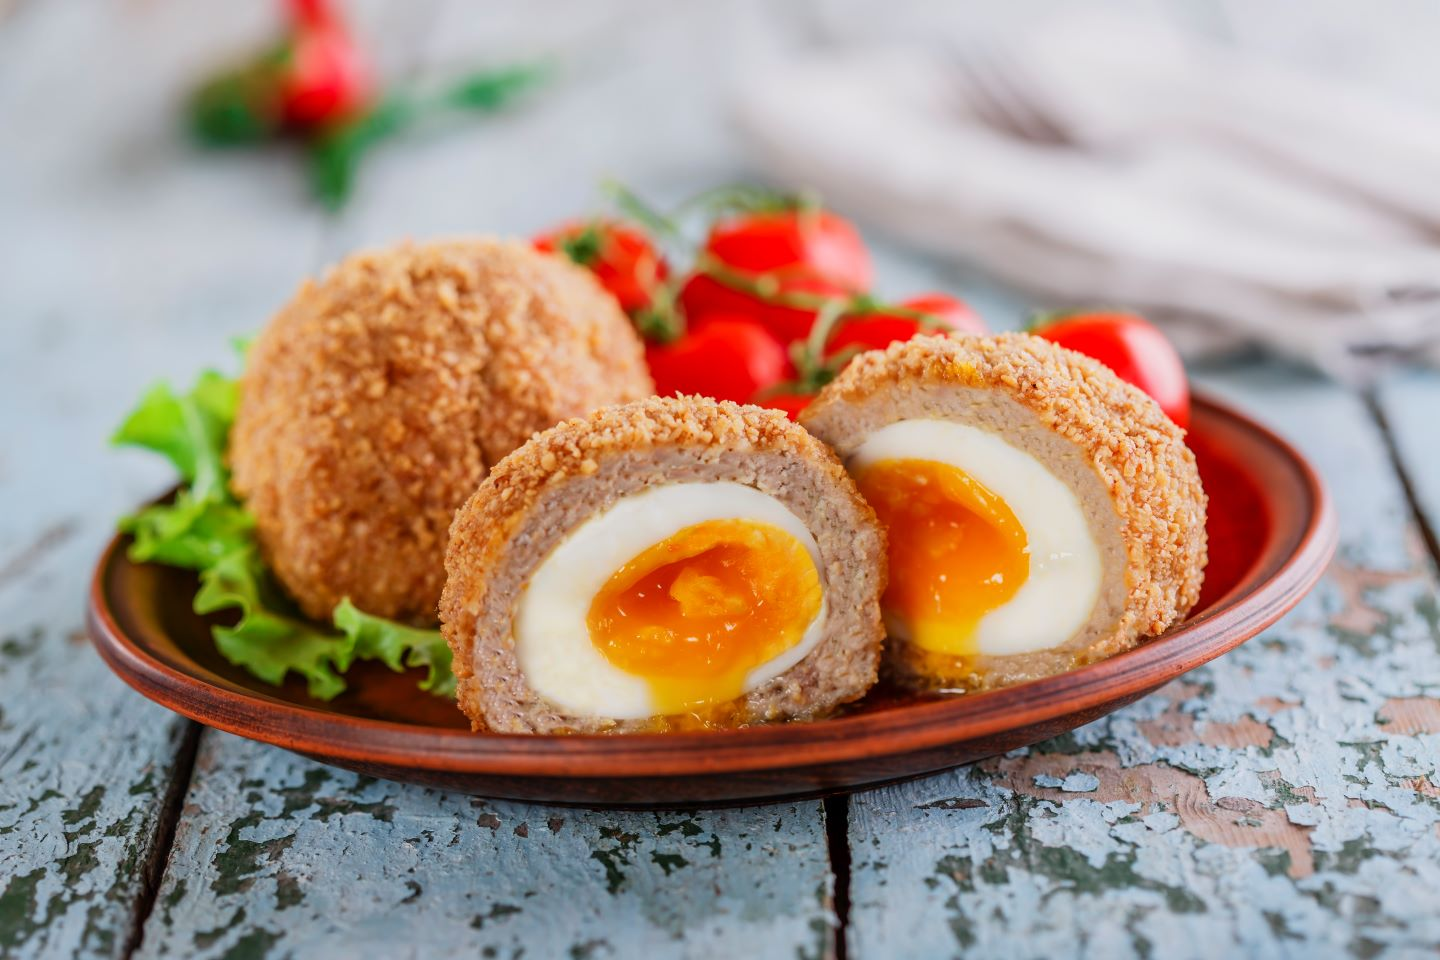 Scotch eggs – made from boiled eggs wrapped in sausage meat and rolled in bread crumbs, then fried to a golden crisp